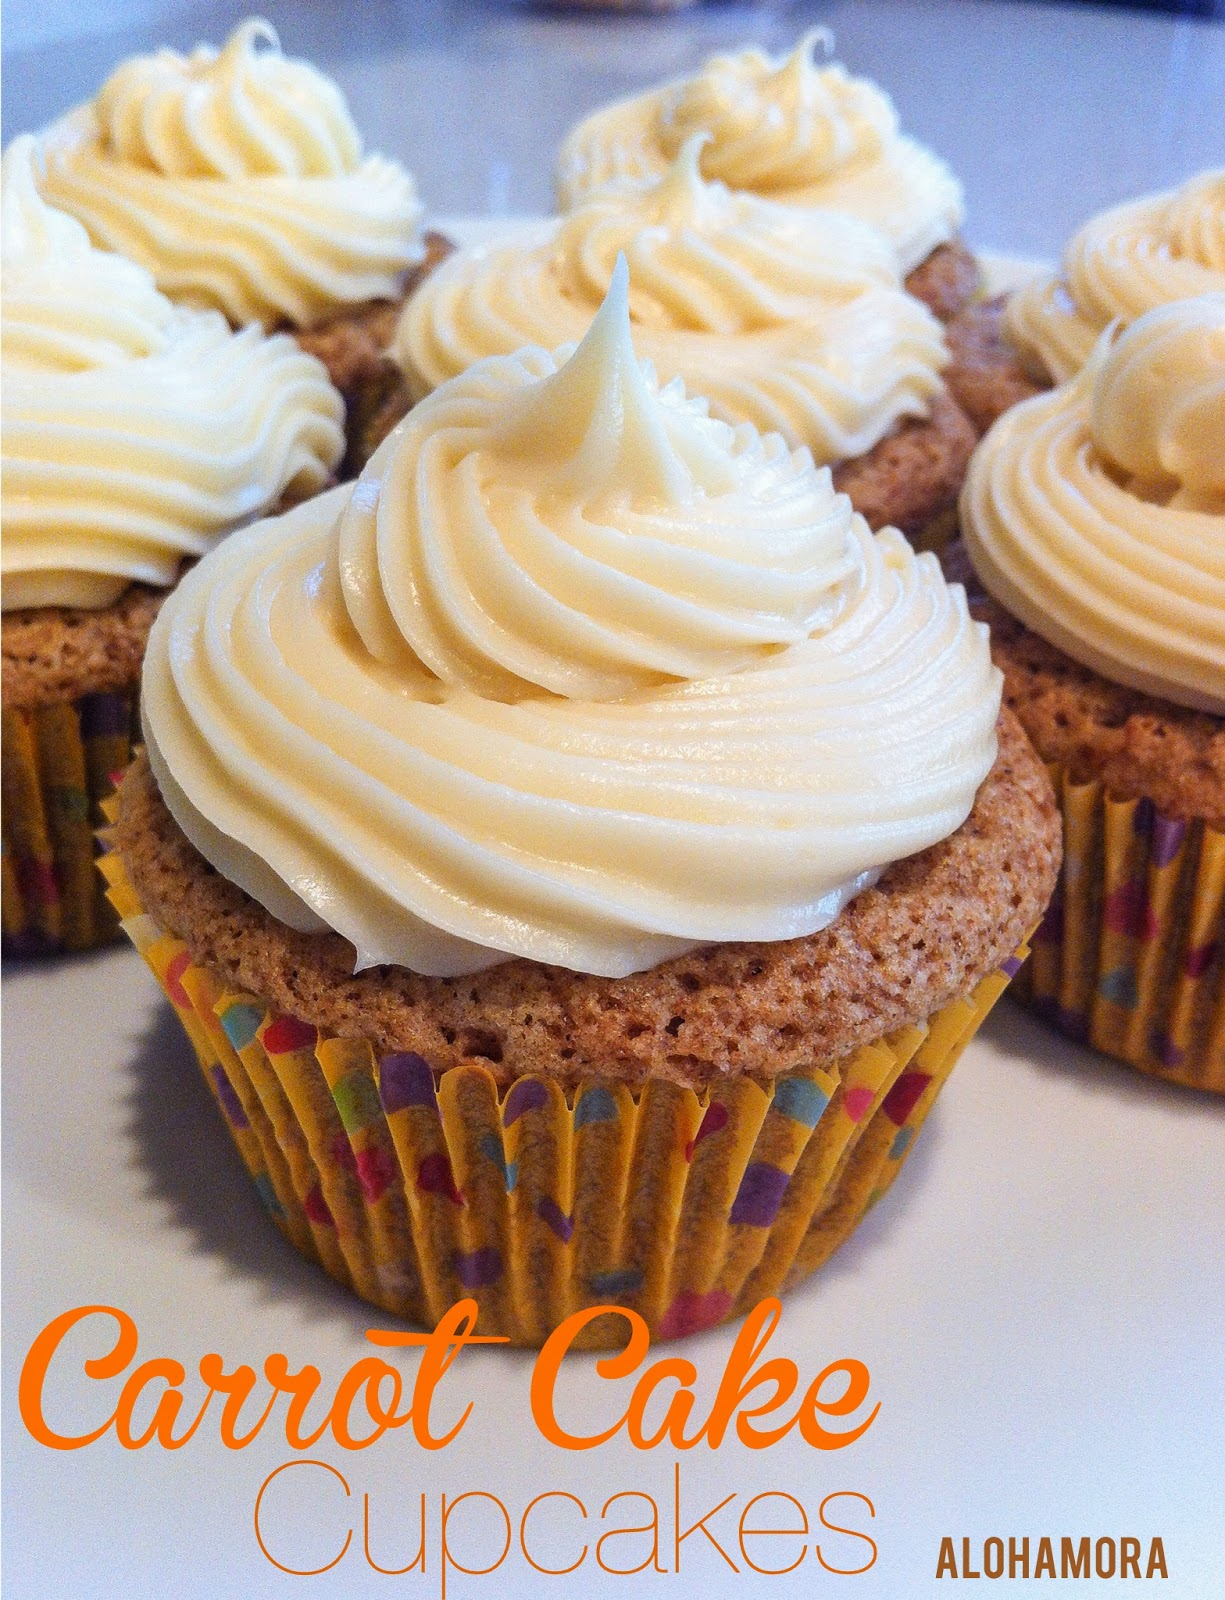 Absolutely delicious carrot cake cupcakes from scratch.  Not too bad if you substitute applesauce too Alohamora Open a Book http://alohamoraopenabook.blogspot.com/